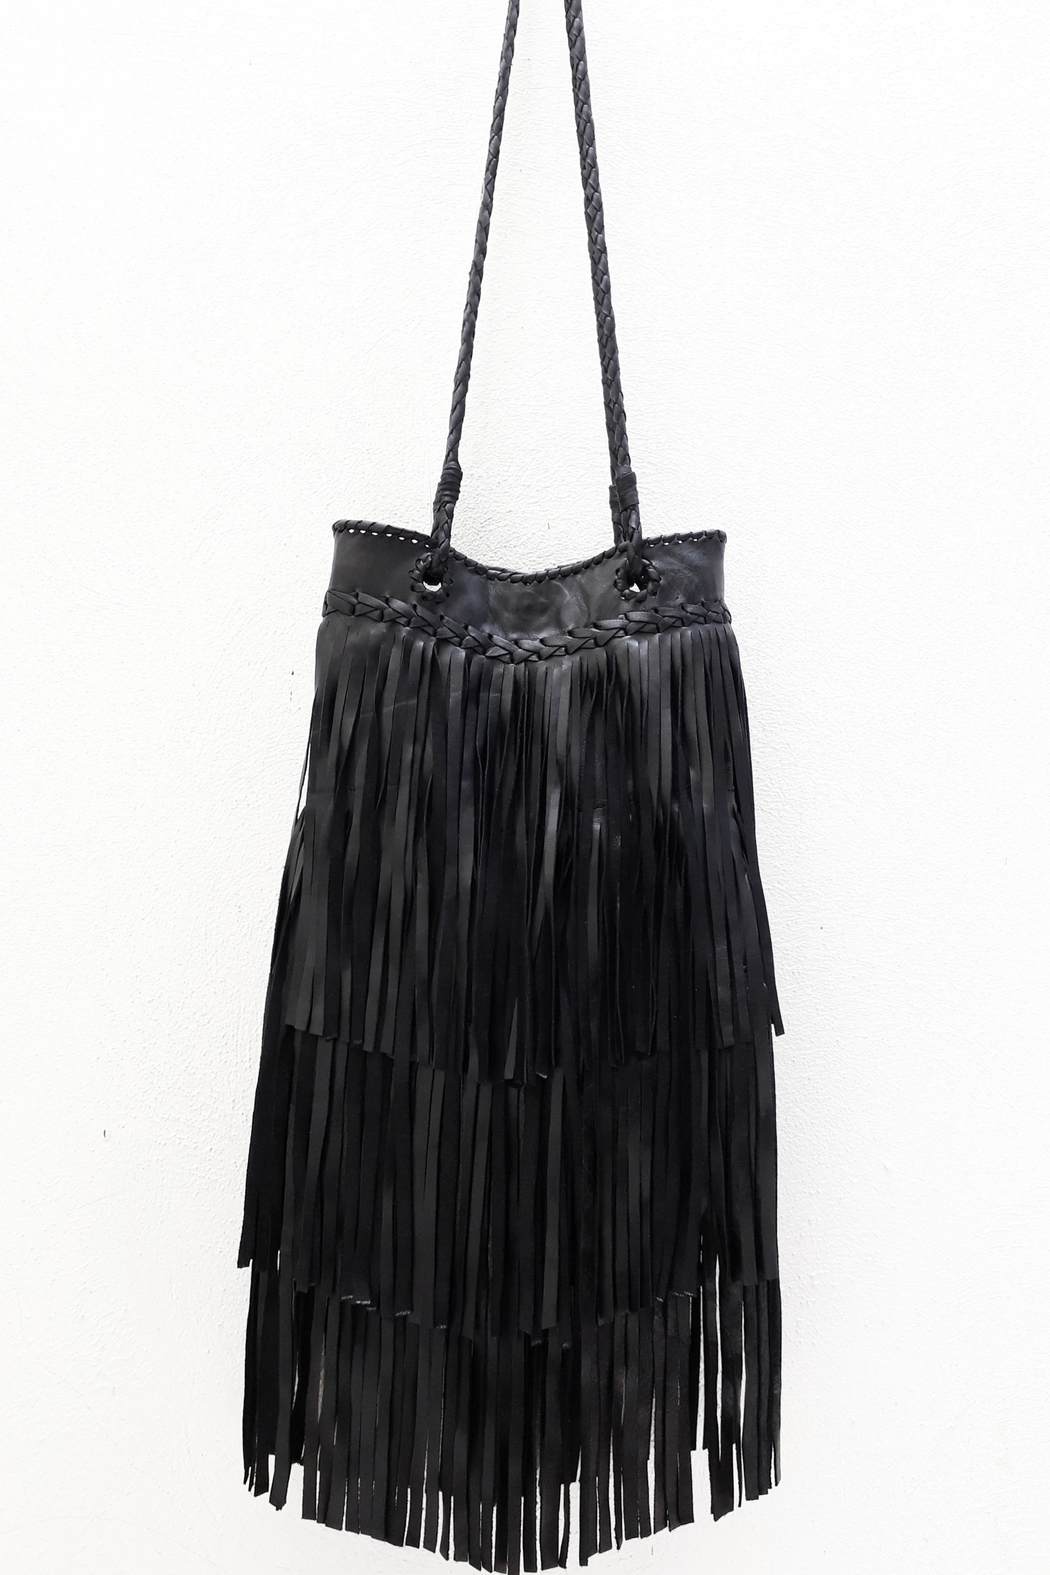 Areias Leather Black Leather Bag - Side Cropped Image